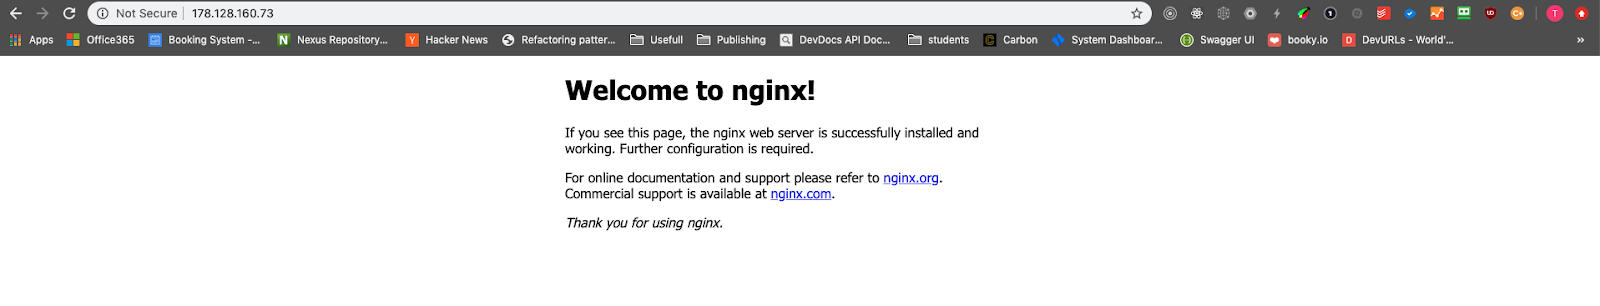 welcome to nginx screenshot